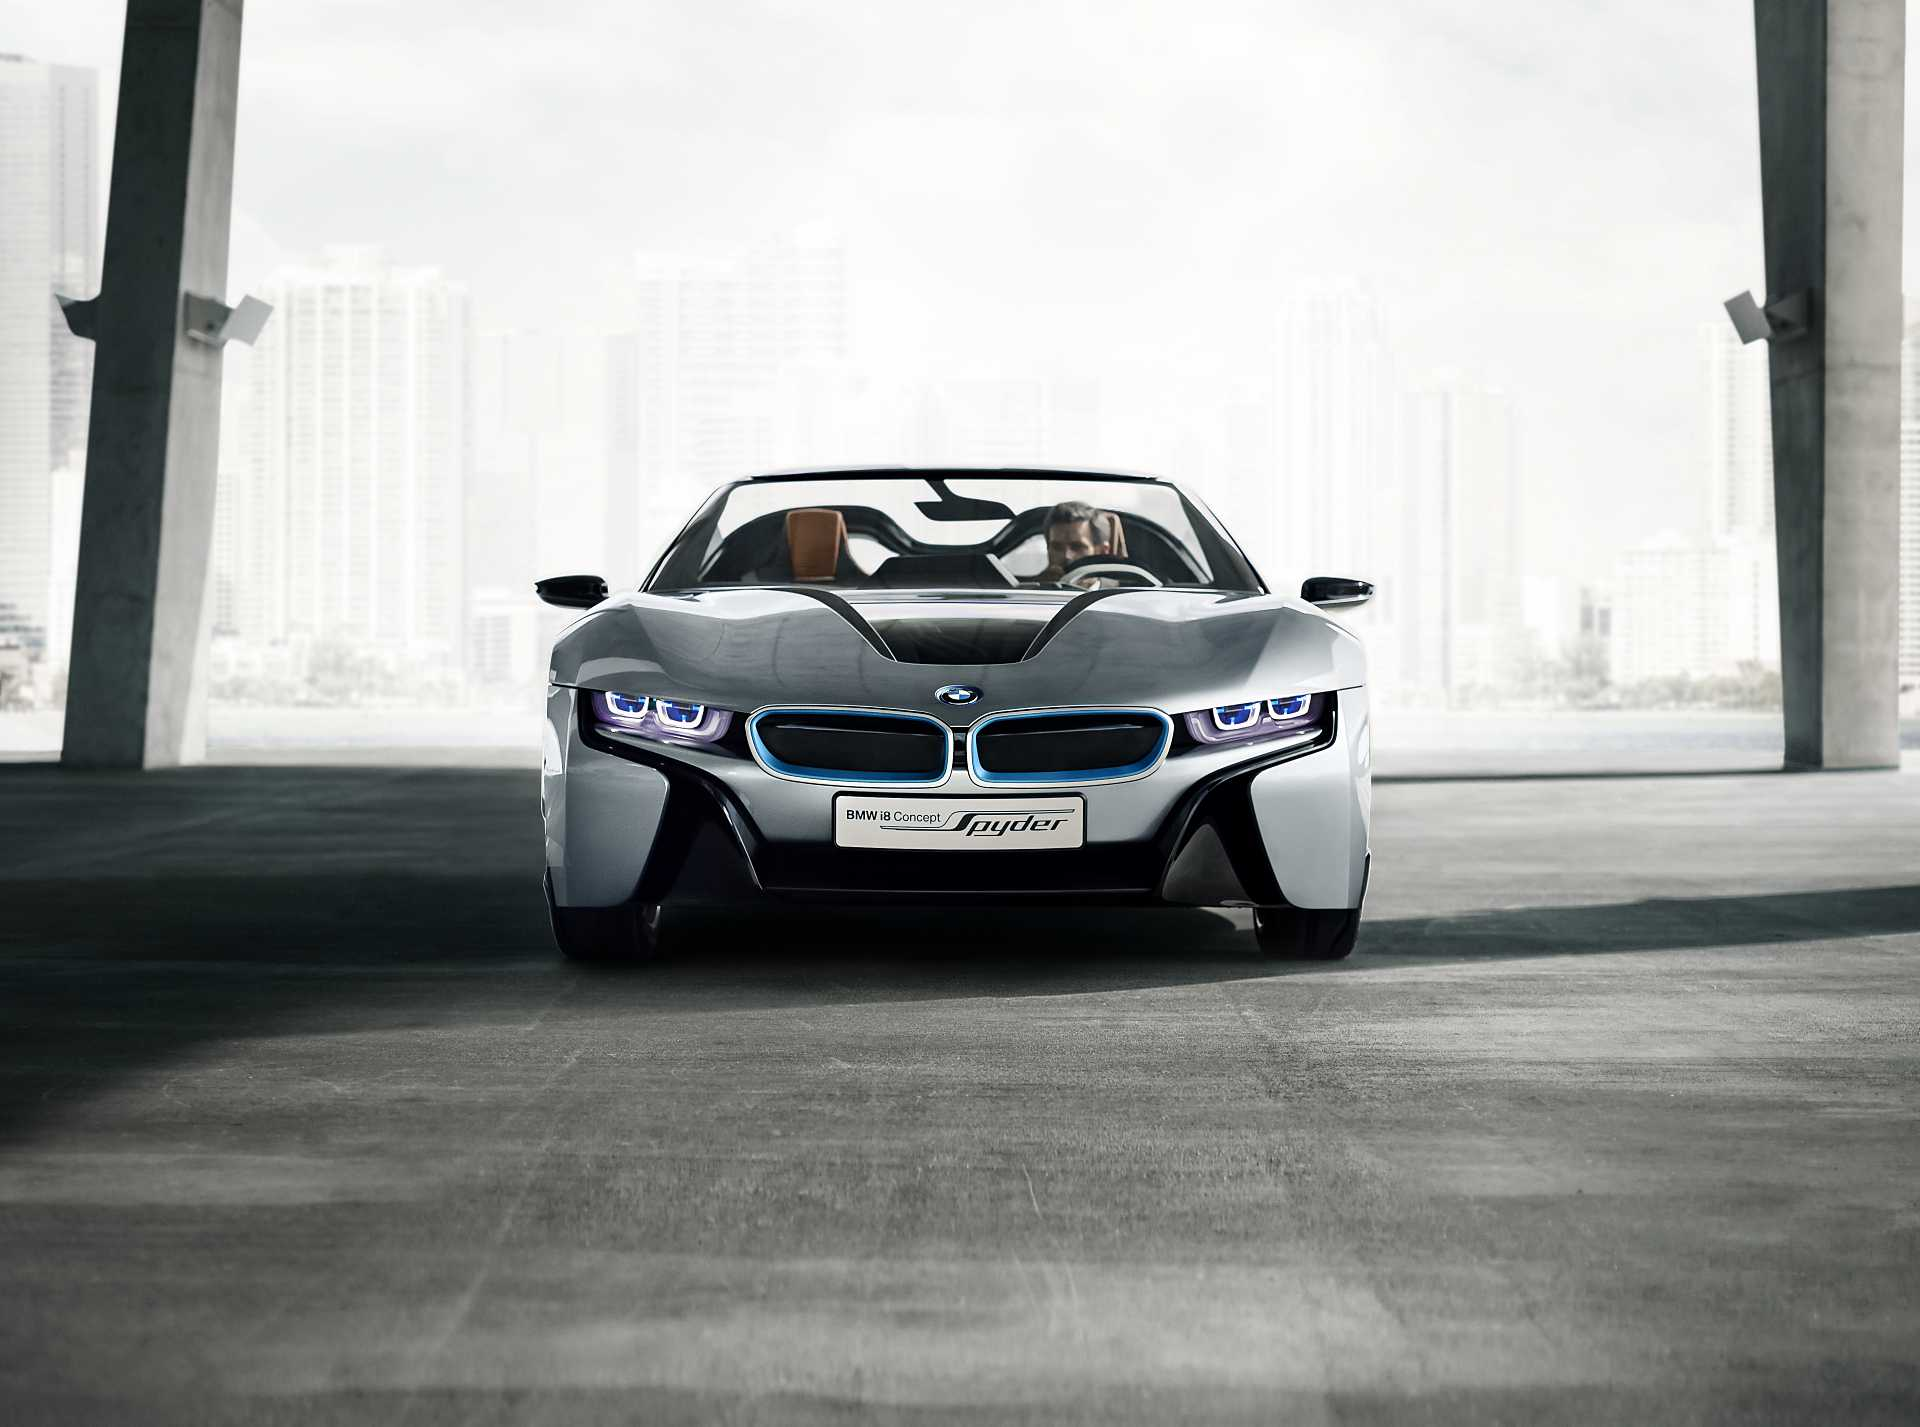 Bmw I8 Spyder 1 5 7 2 Kwh Single Speed 362hp 2012